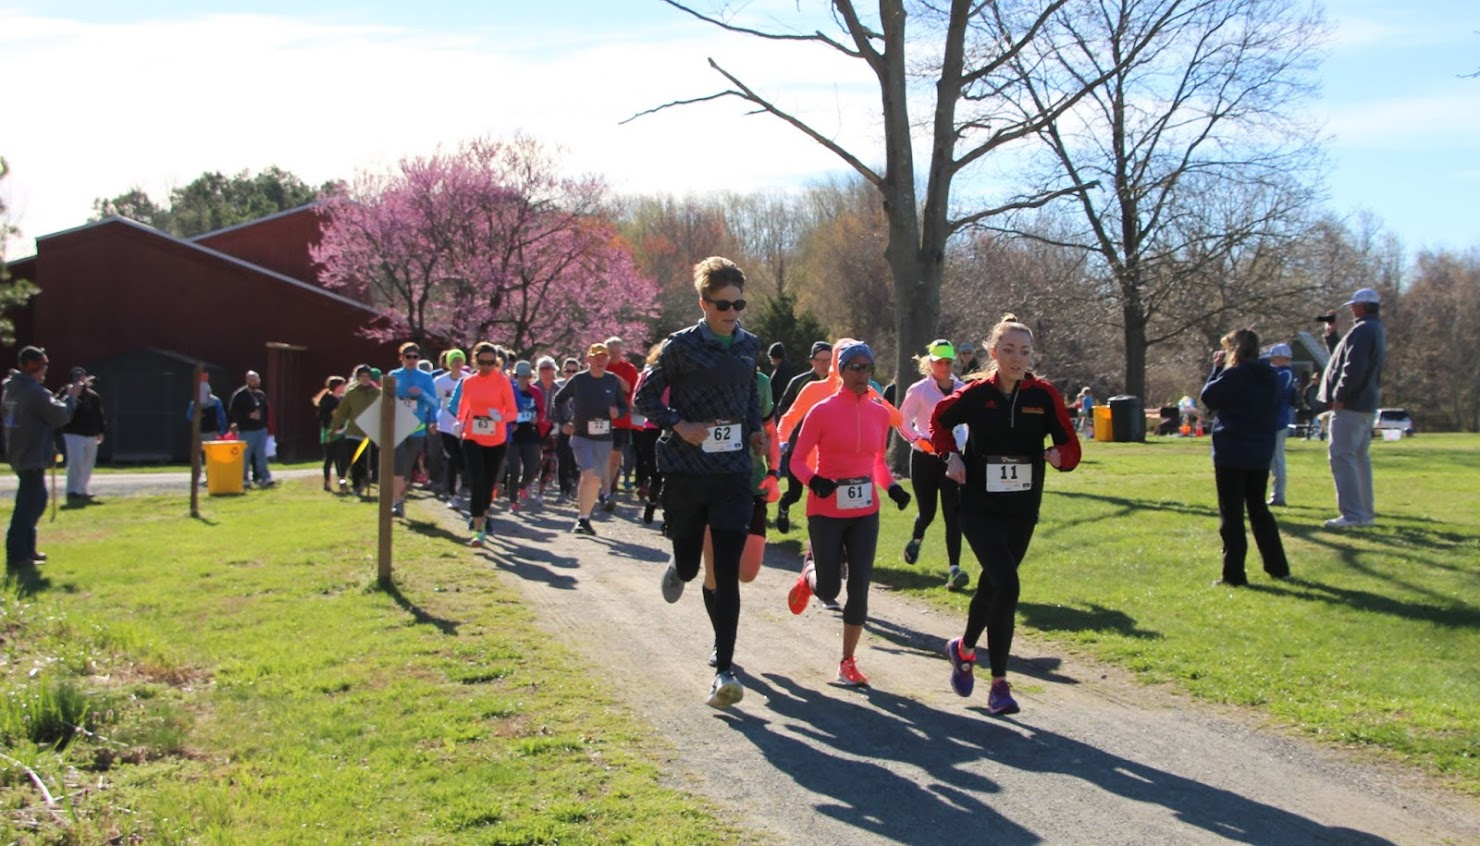 Celebrate Spring at the 13th Annual Arbor Day Run